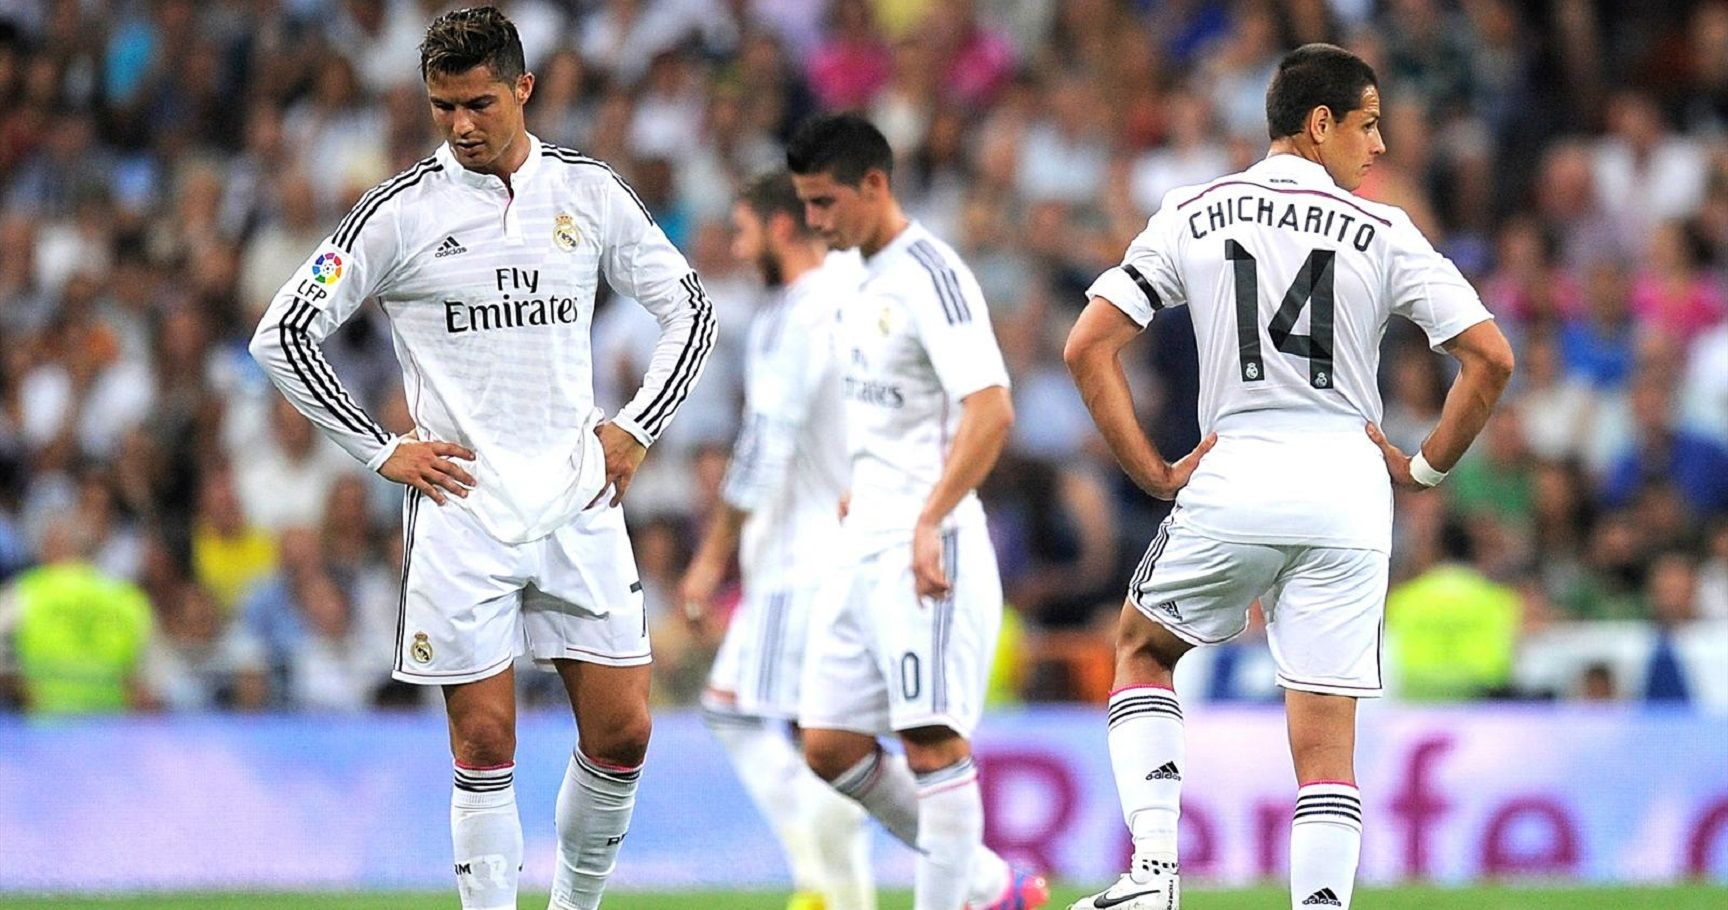 The 10 Most Disappointing Soccer Teams in 2014-15